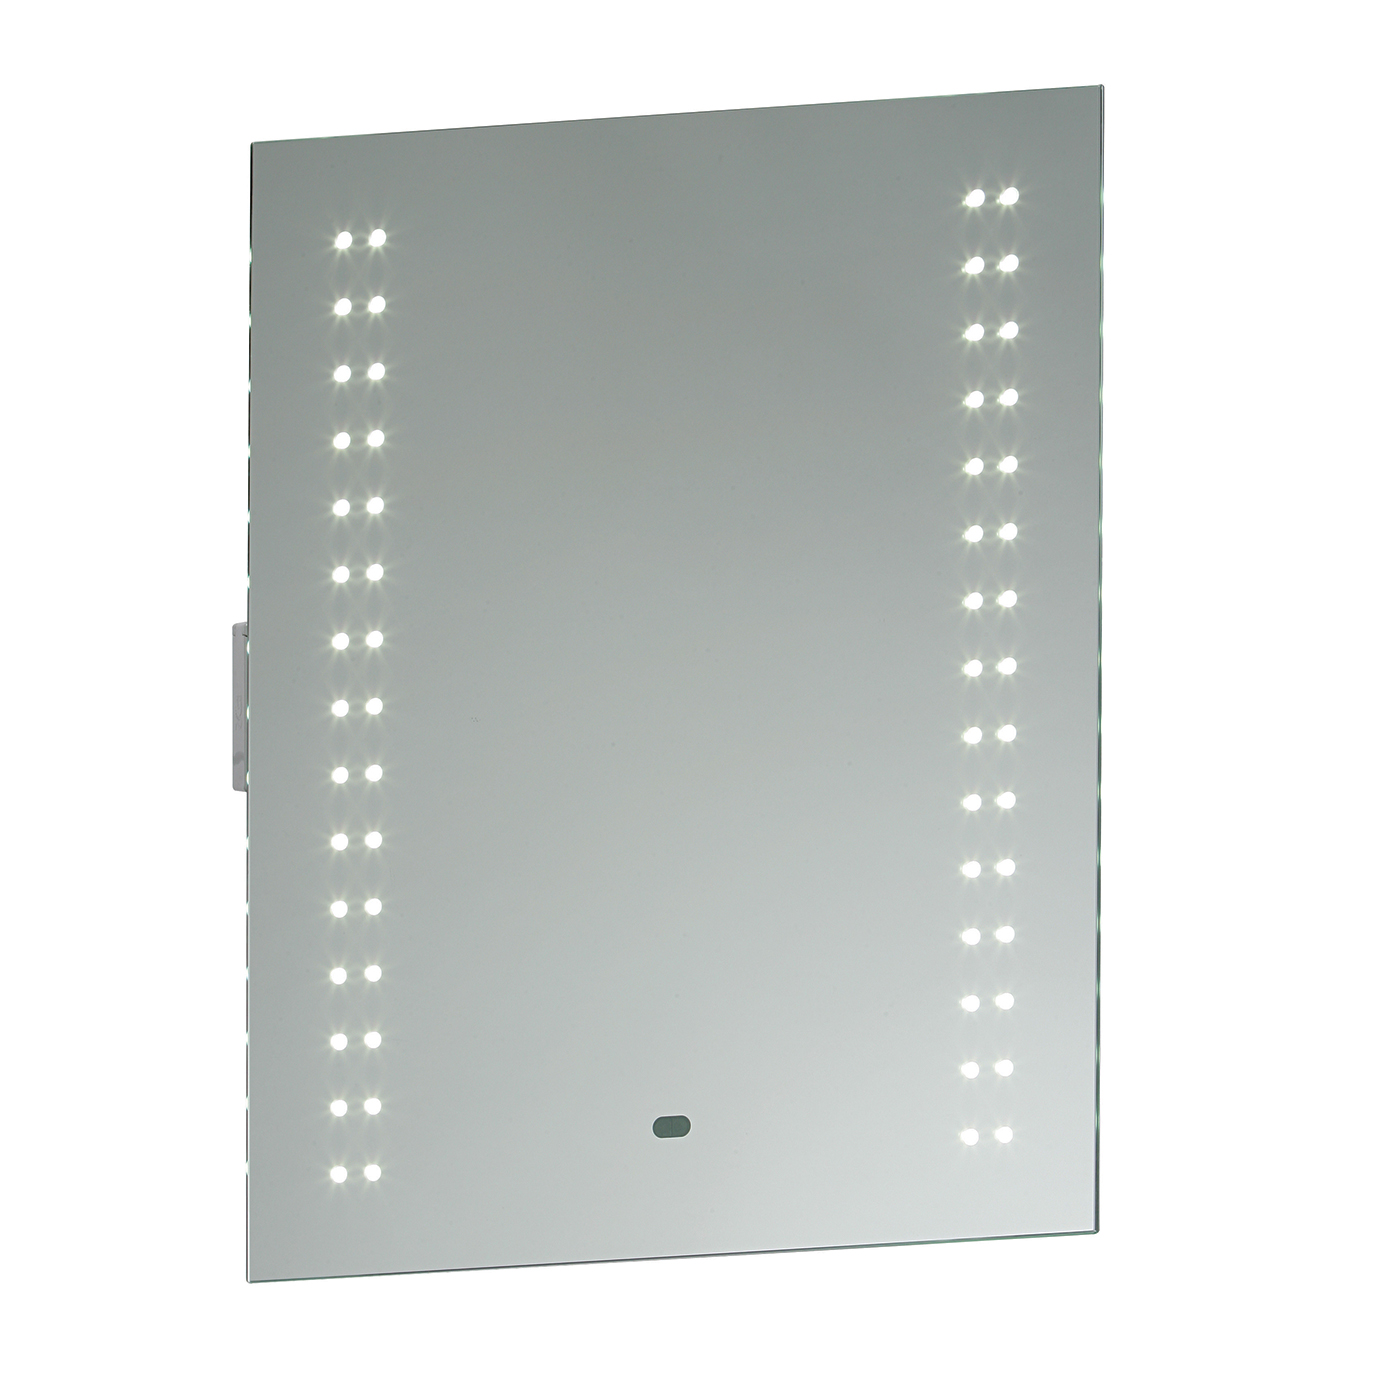 Endon Perle LED shaver bathroom mirror IP44 5W sensor H: 600mm W: 500mm Thumbnail 1